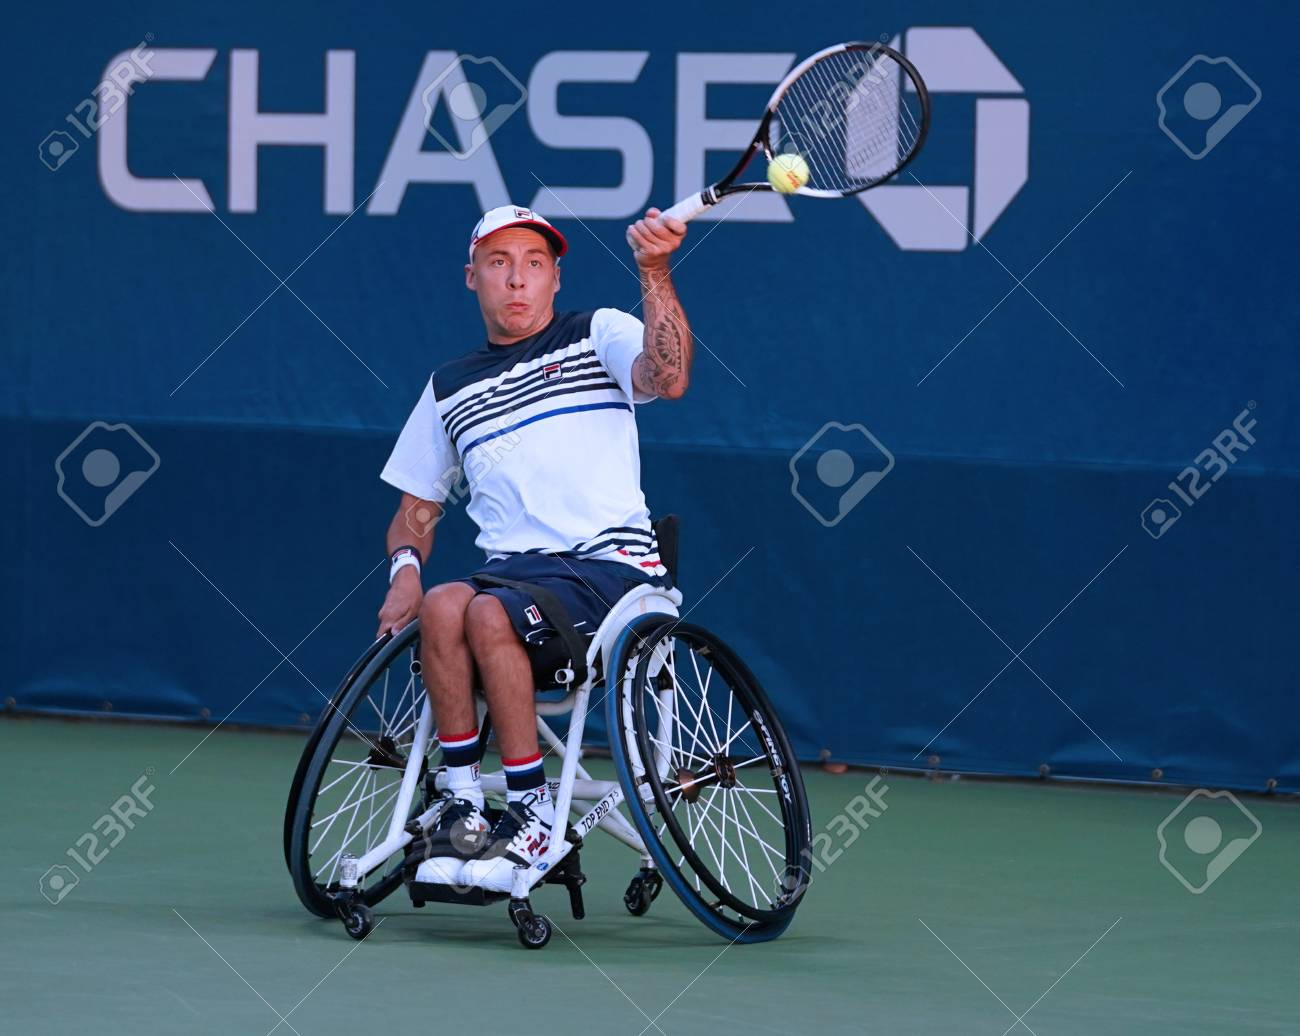 wheelchair quad electric massage chair new york september 7 2017 tennis player andrew lapthorne of great britain